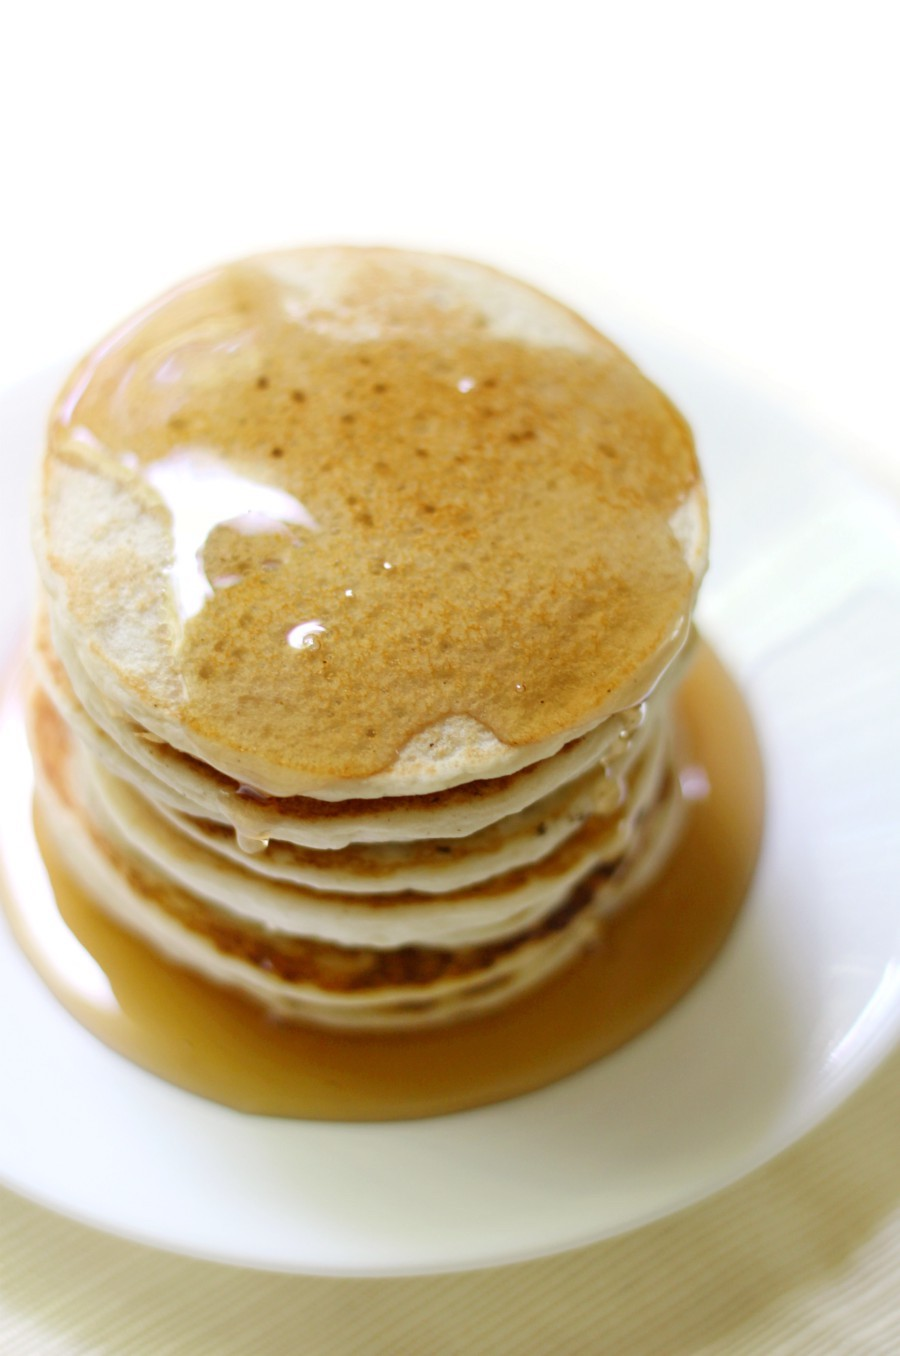 pancakes-with-syrup-white-plate